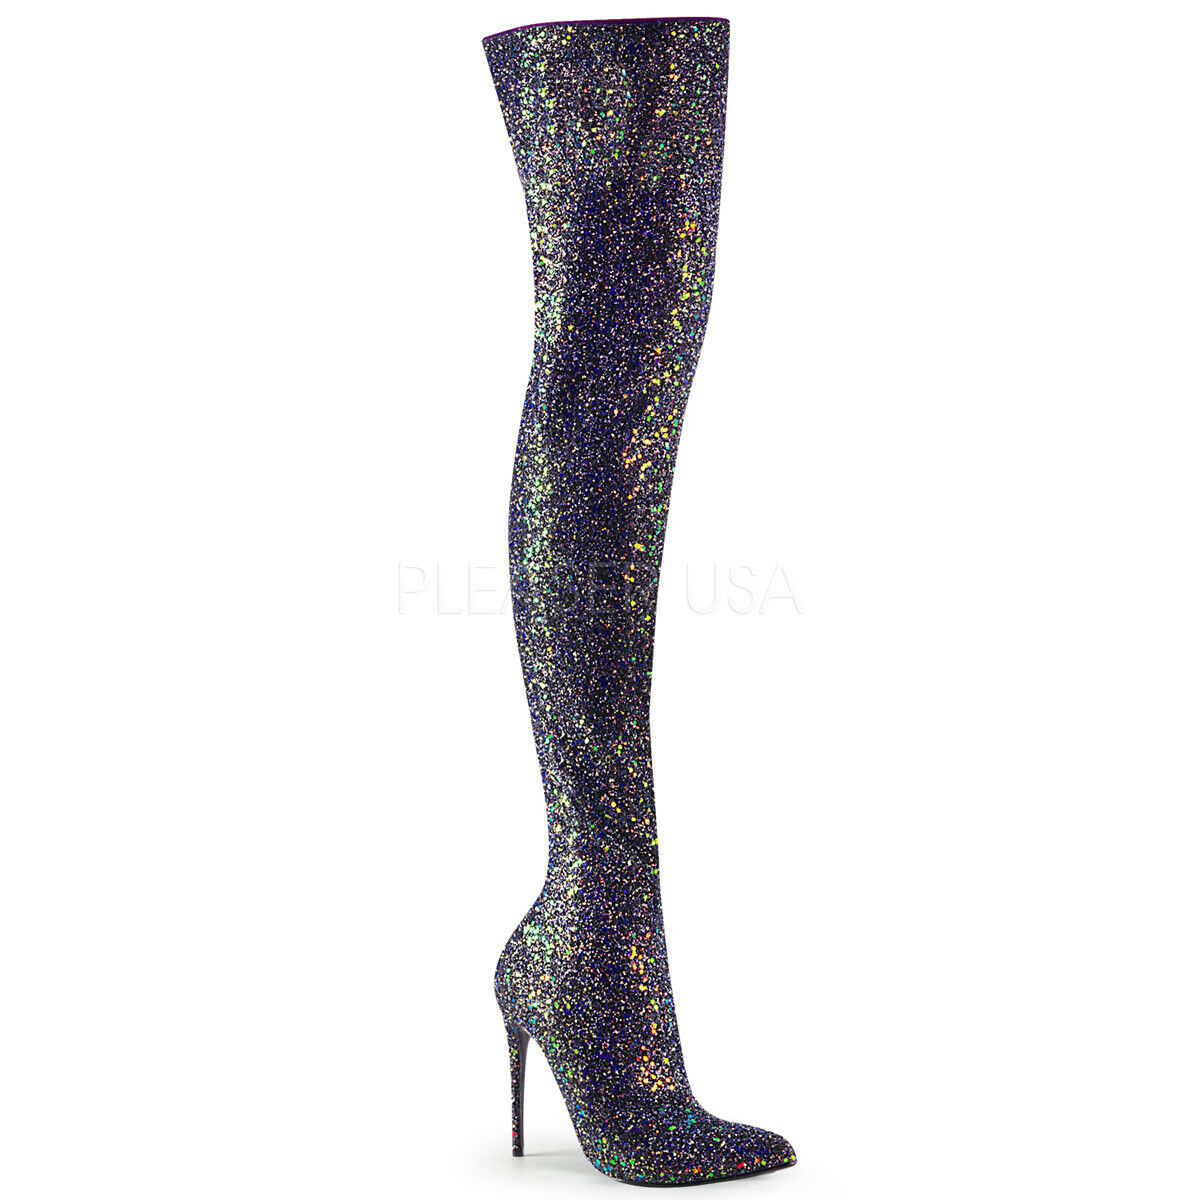 Pleaser COURTLY-3005 3011 Stiefel 3012 3015 3017 4017 Thigh High Stiefel 3011 5